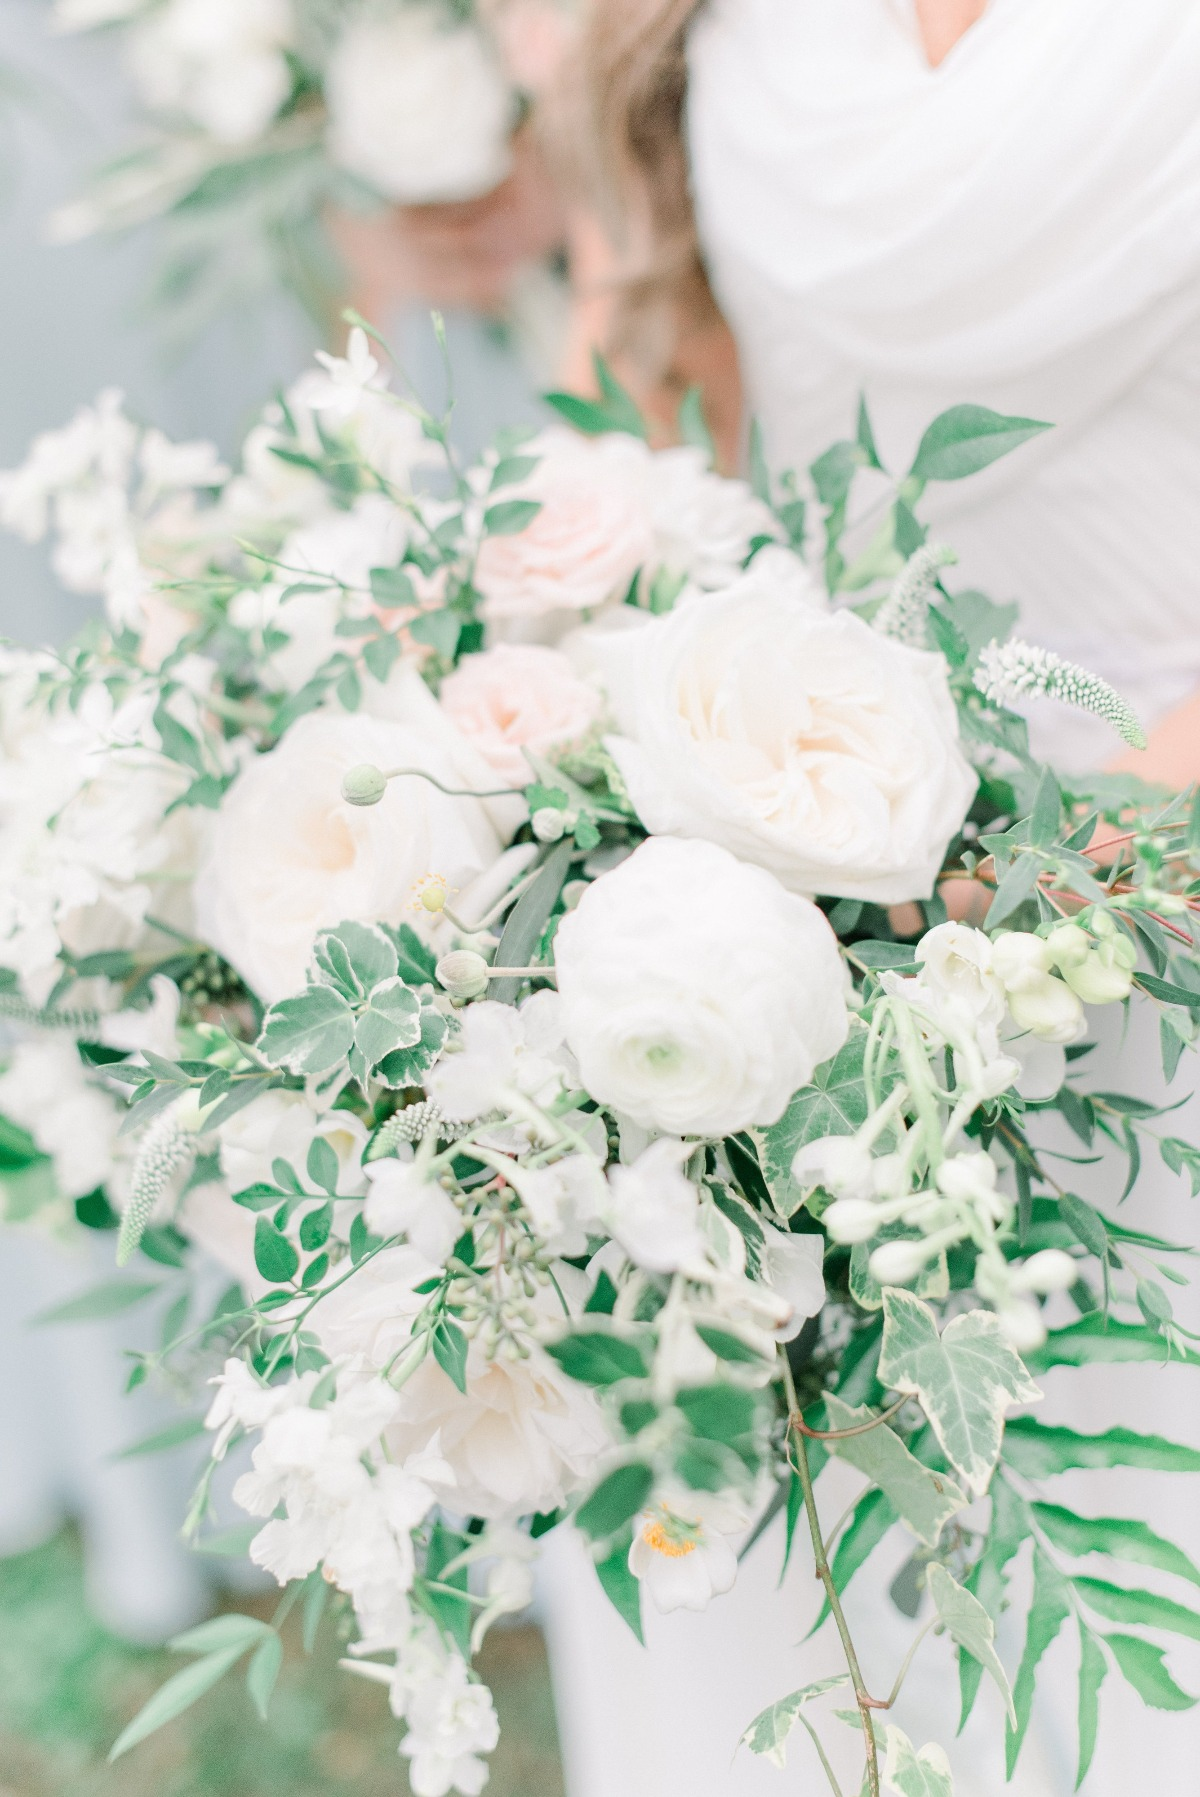 How To Have The Romantic Pastel Wedding Of Your Dreams